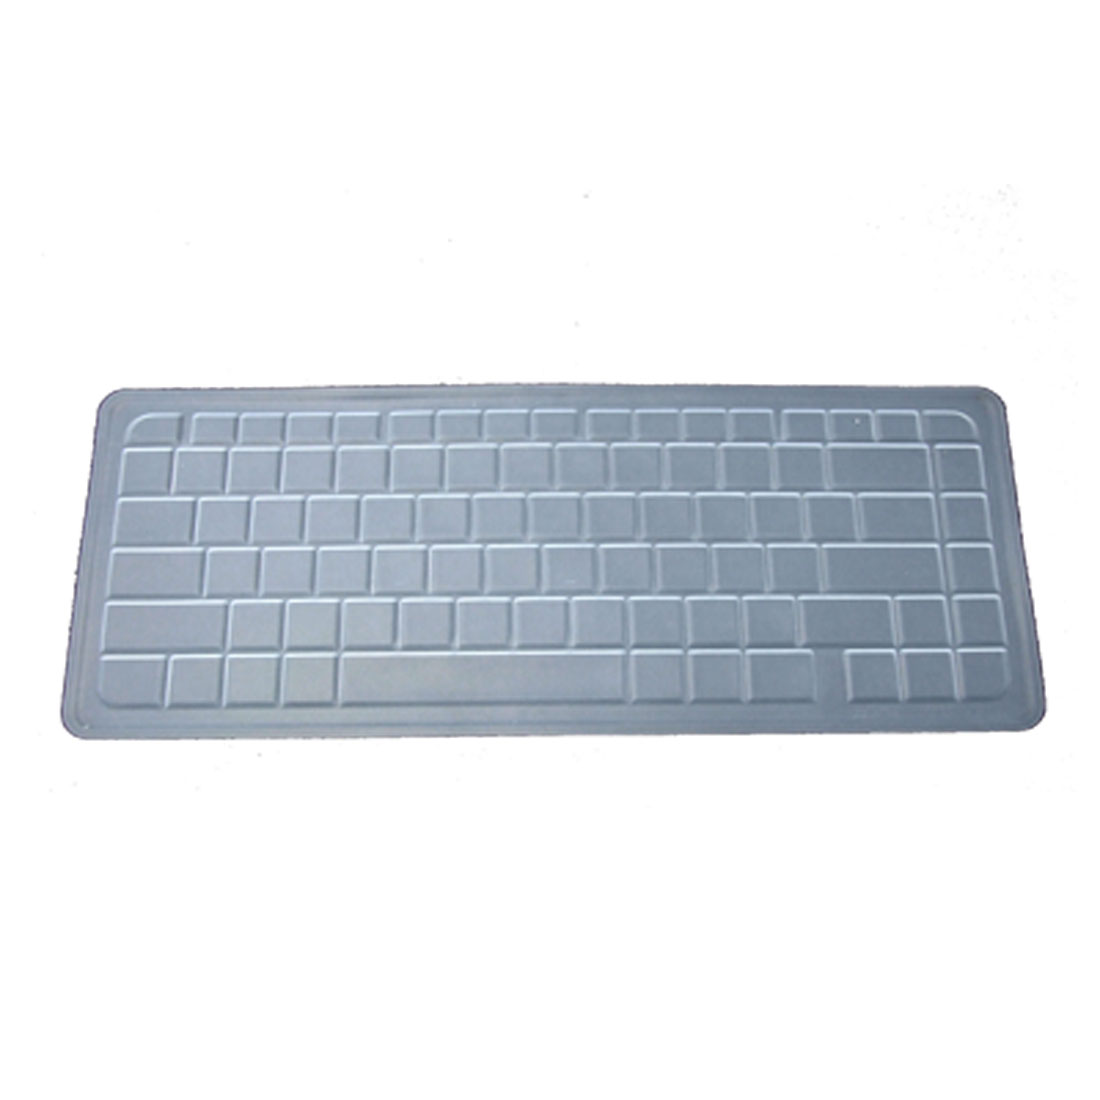 New Laptop Keyboard Silicone Skin Cover for HP V3000 DV2000 (ML-1020a)